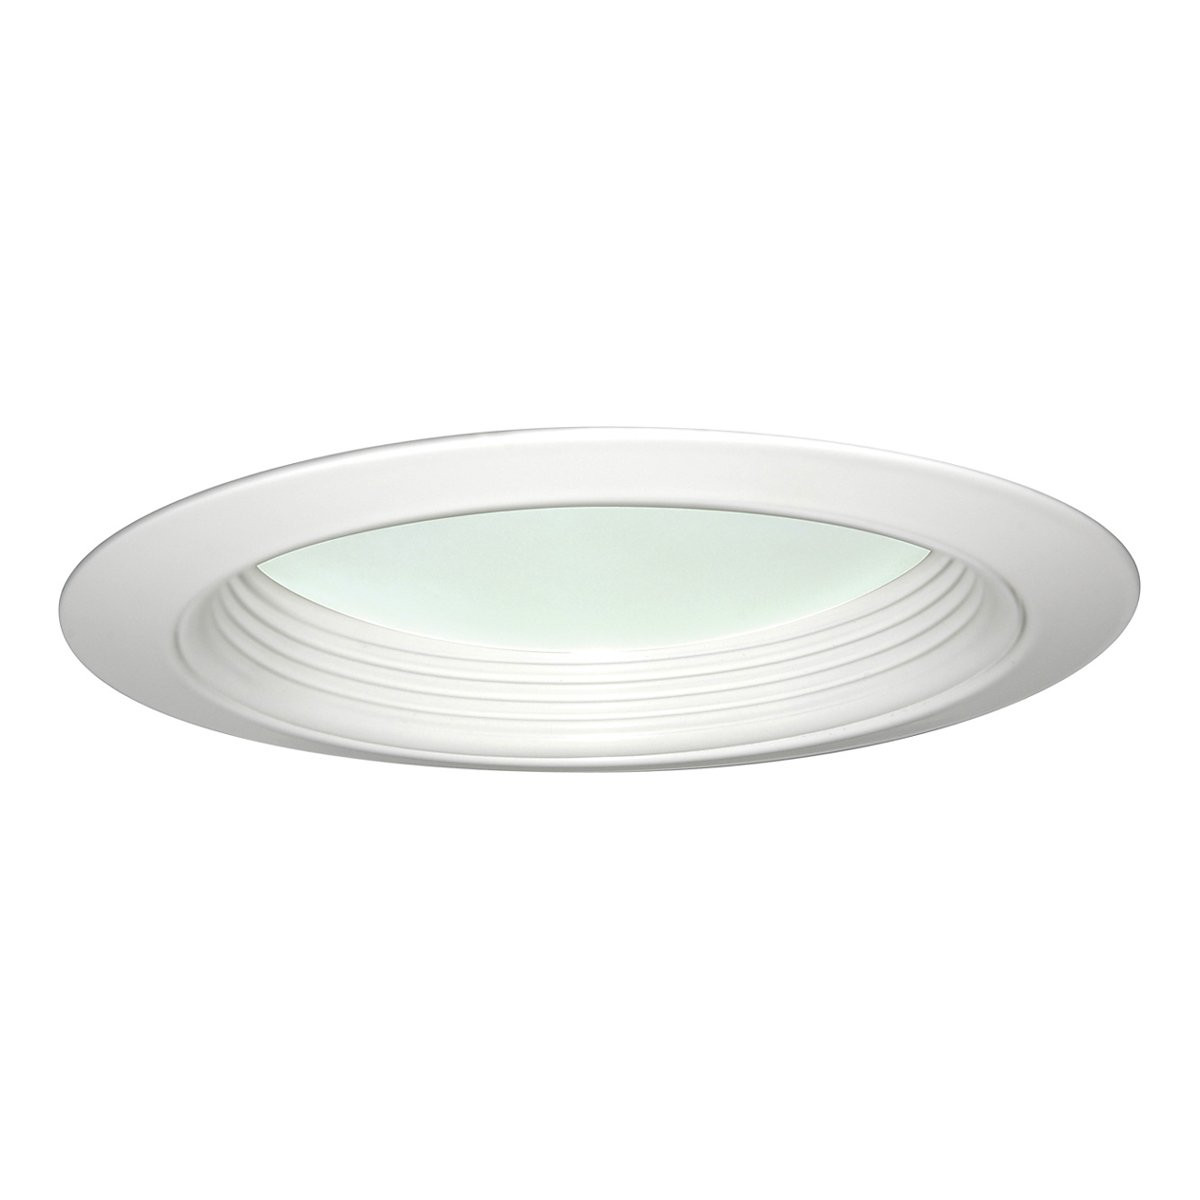 Best ideas about Juno Recessed Lighting . Save or Pin Juno Lighting Group 2130W WH 5 in Recessed Lighting Trim Now.